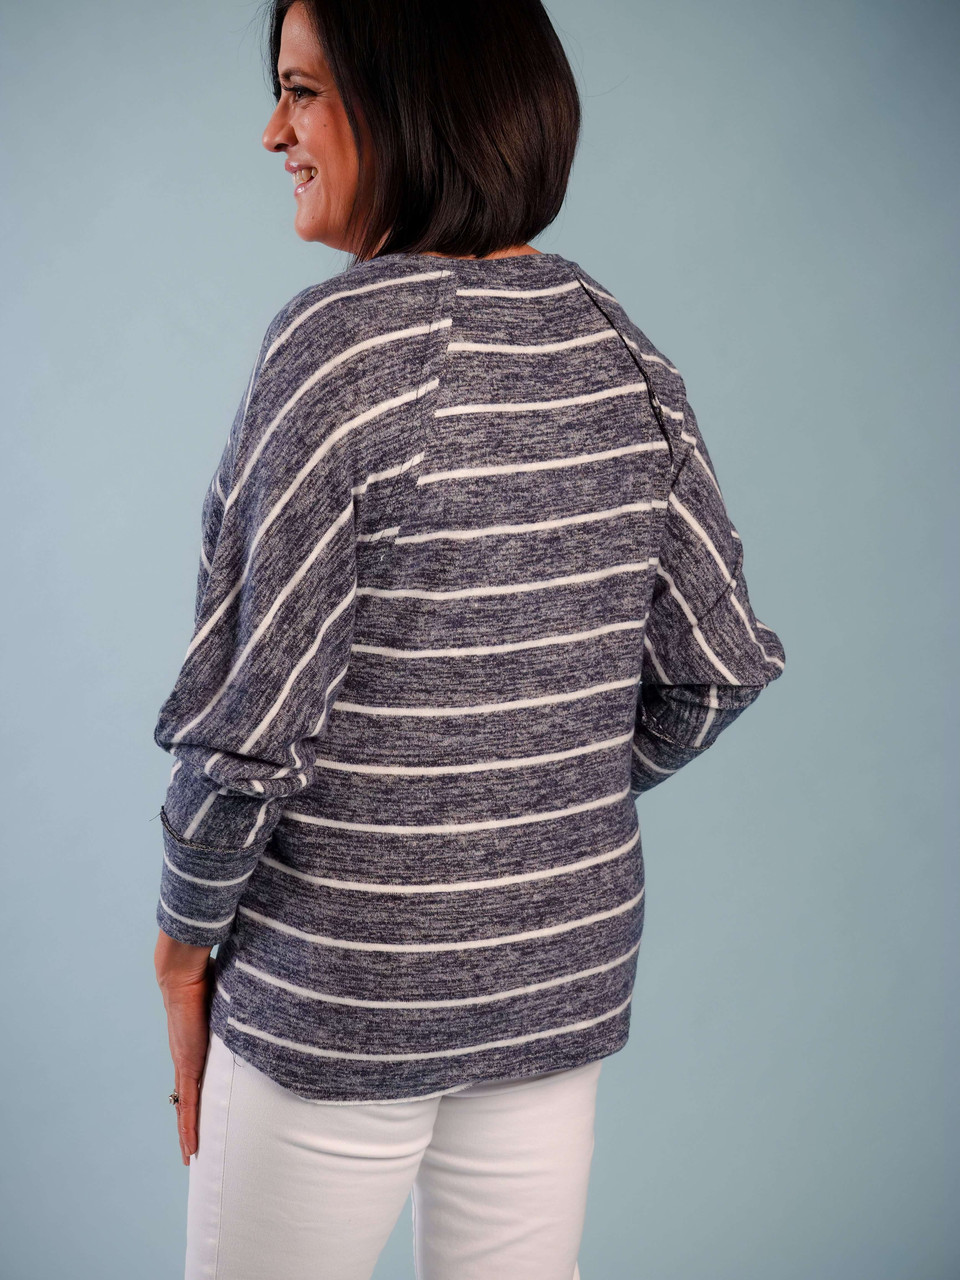 Soft knit round neck striped top